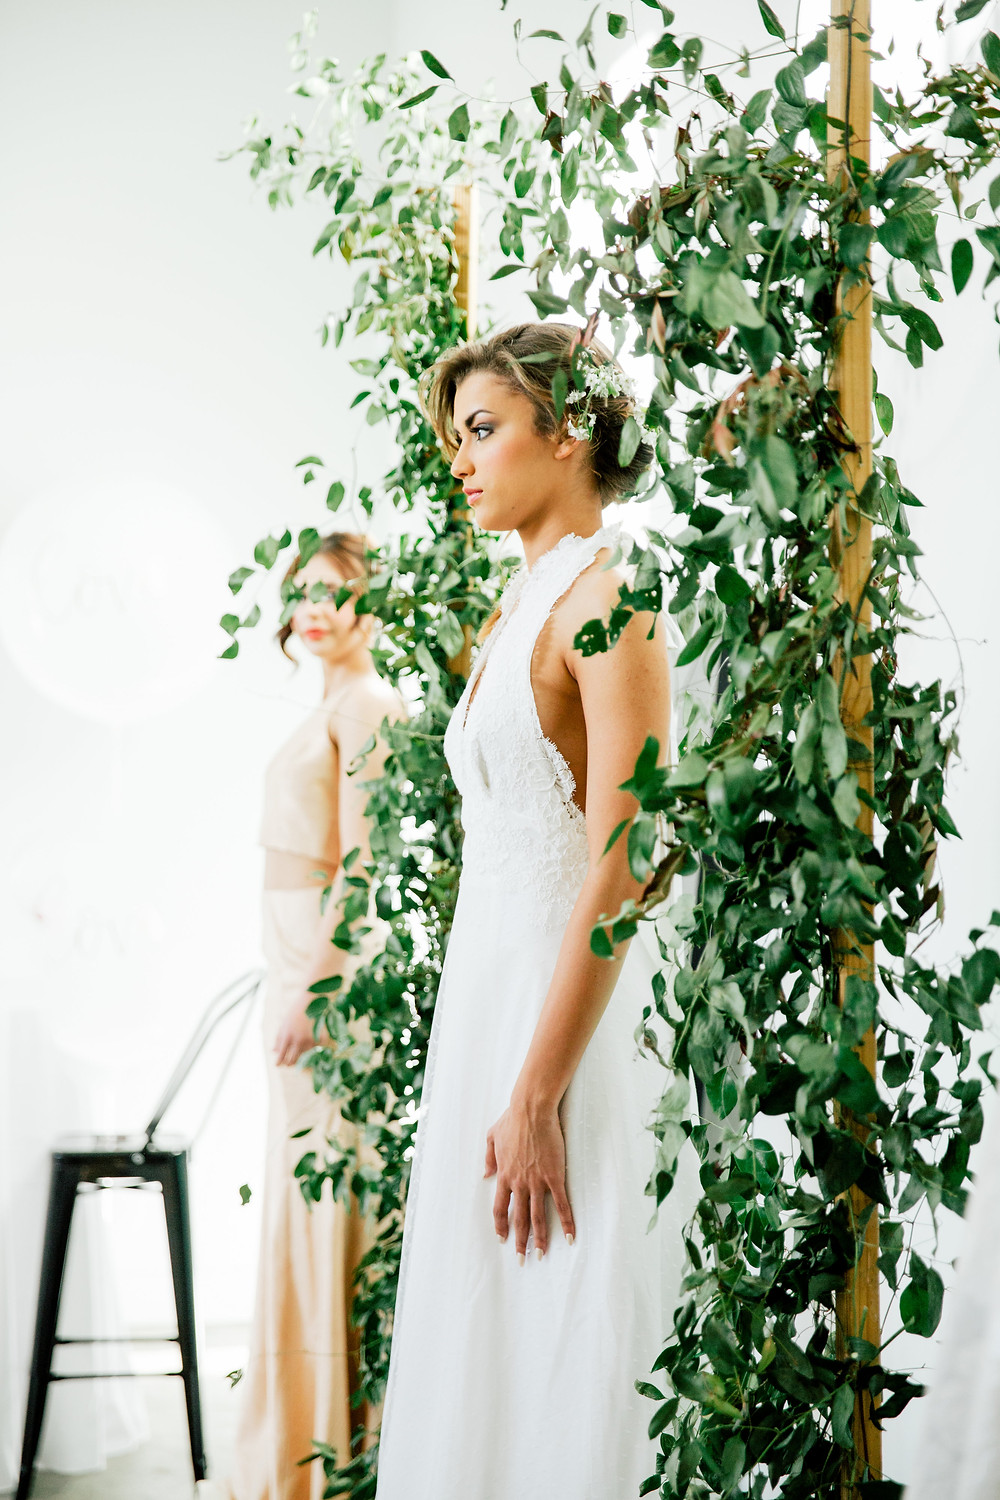 Models in wedding gowns stand between greenery-laden posts